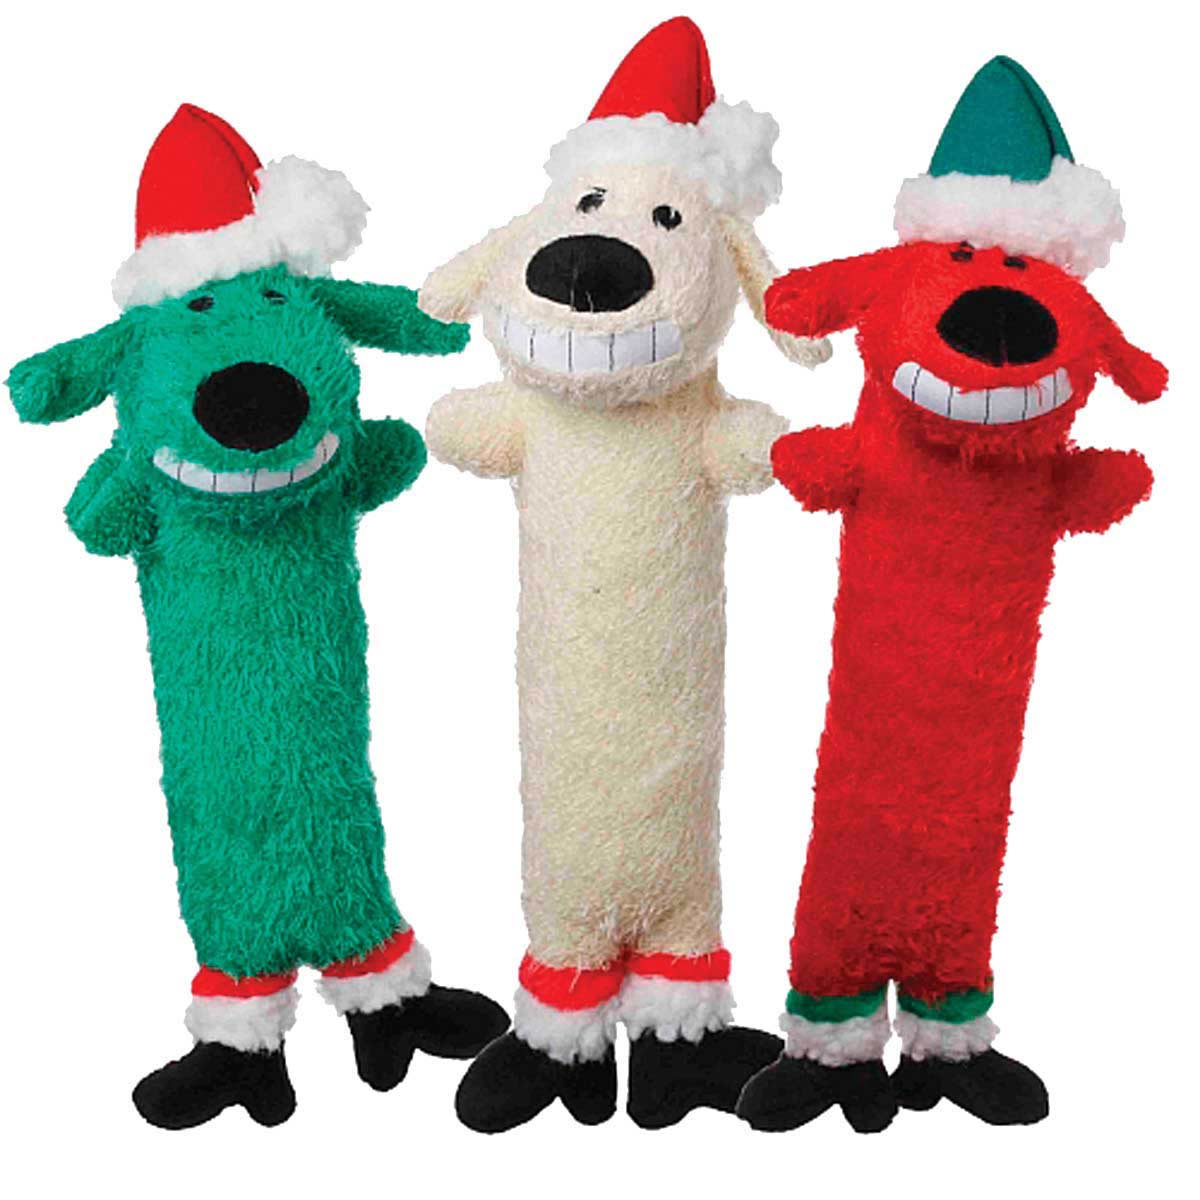 Assorted Colors of Multipet Loofa Santa Dog Toy - 12 inch